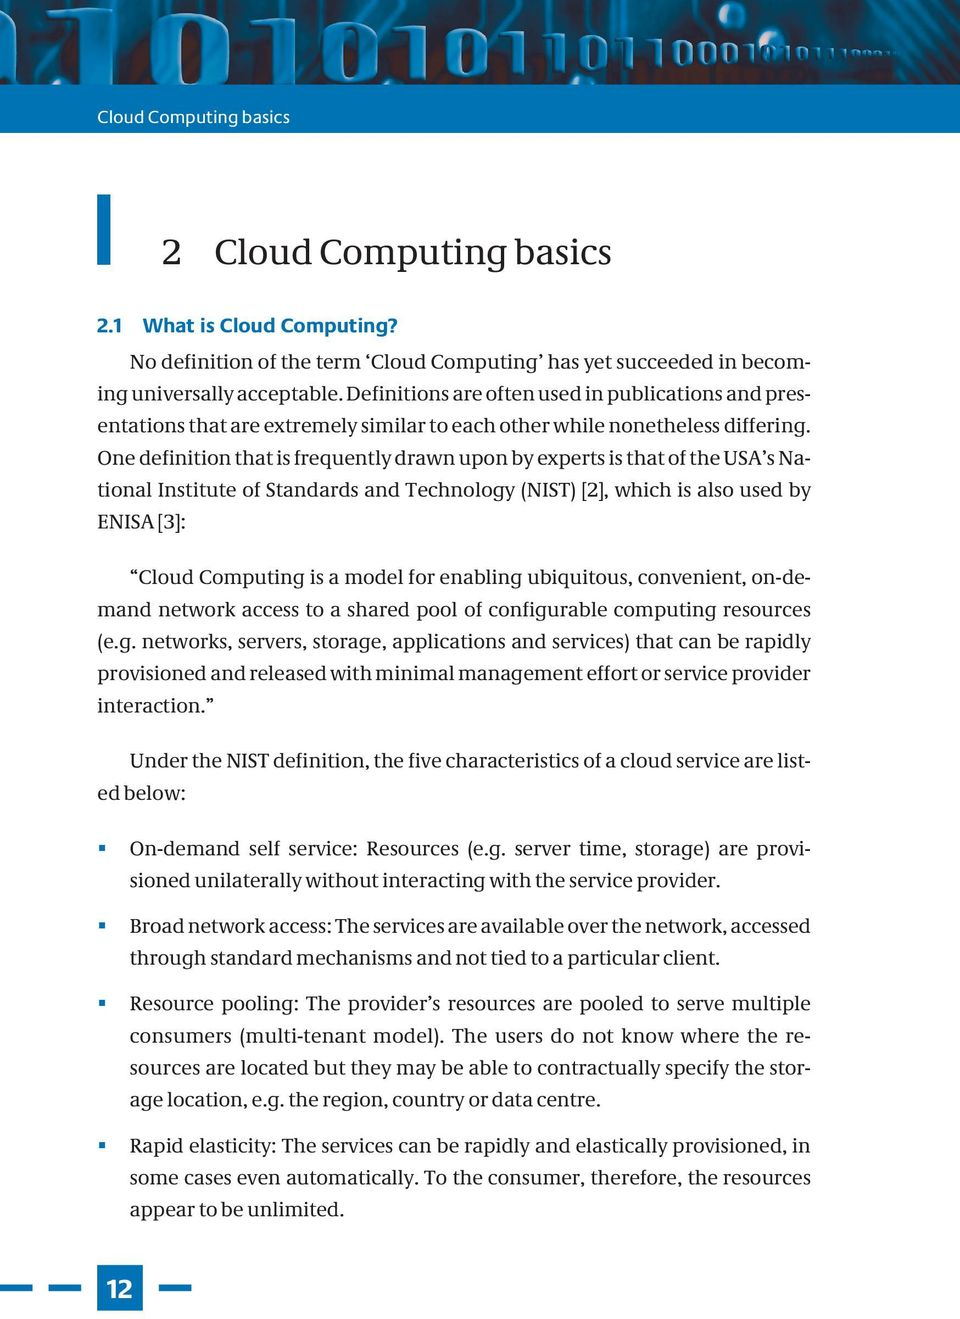 One definition that is frequently drawn upon by experts is that of the USA s National Institute of Standards and Technology (NIST) [2], which is also used by ENISA [3]: Cloud Computing is a model for